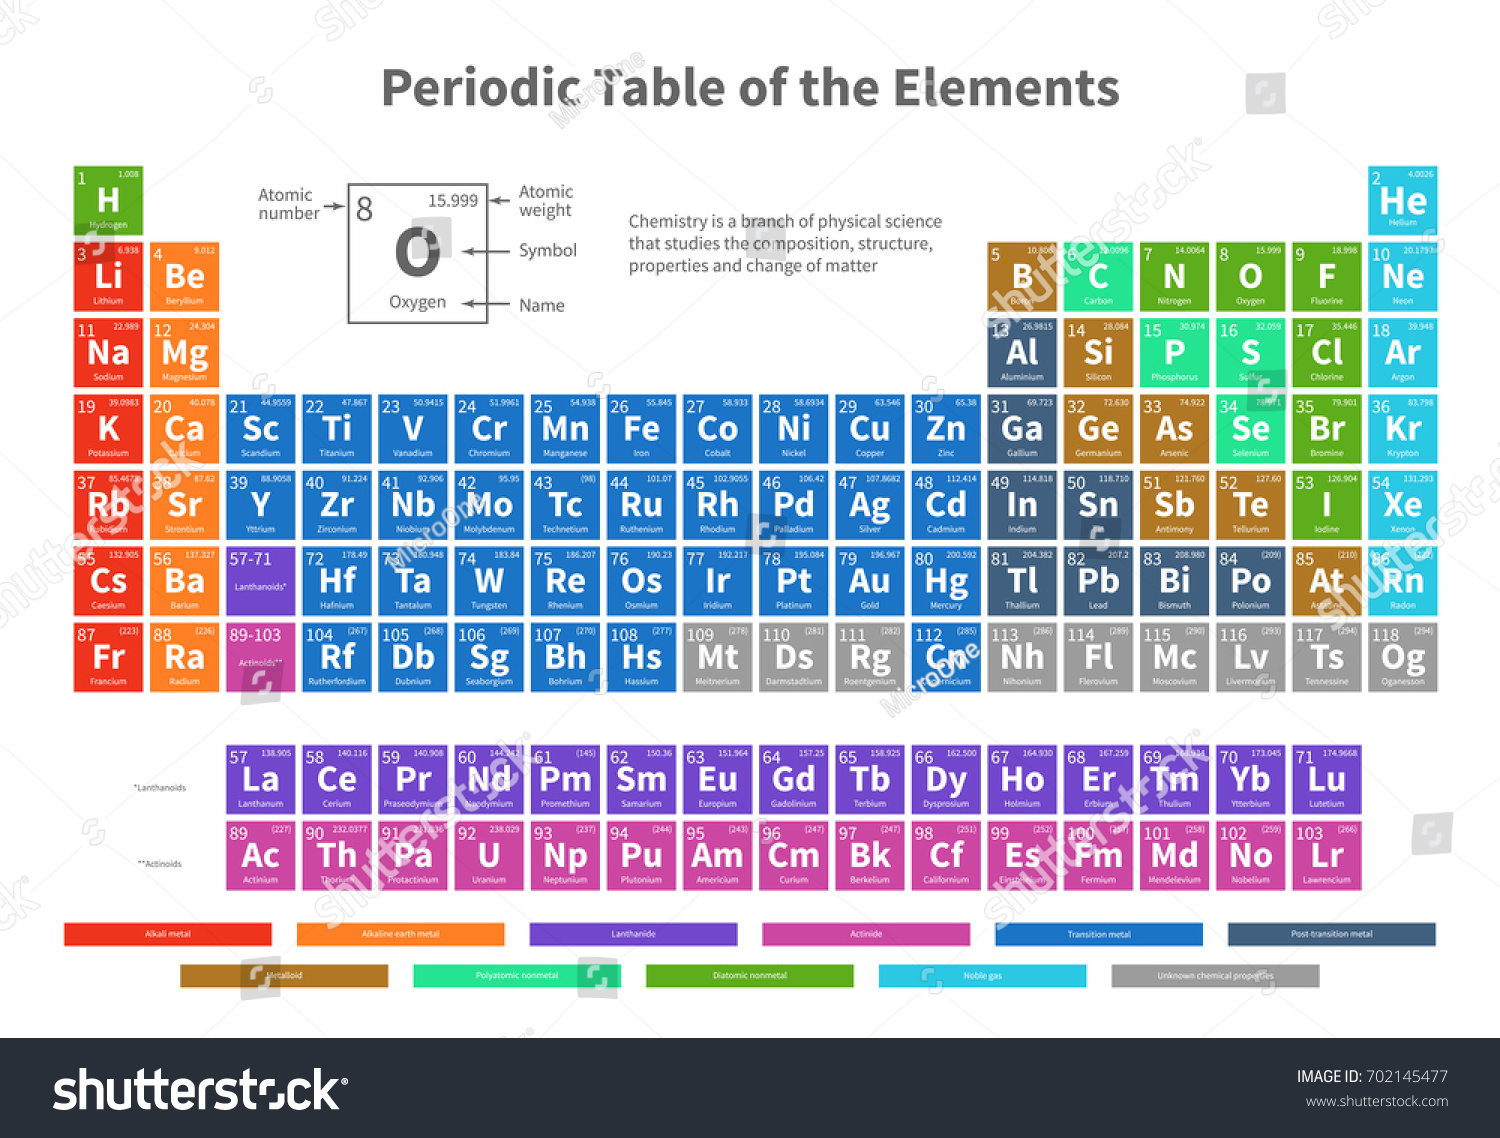 Chemical periodic table elements color cells stock vector chemical periodic table of elements with color cells vector illustration periodic element chemistry table illustration gamestrikefo Gallery